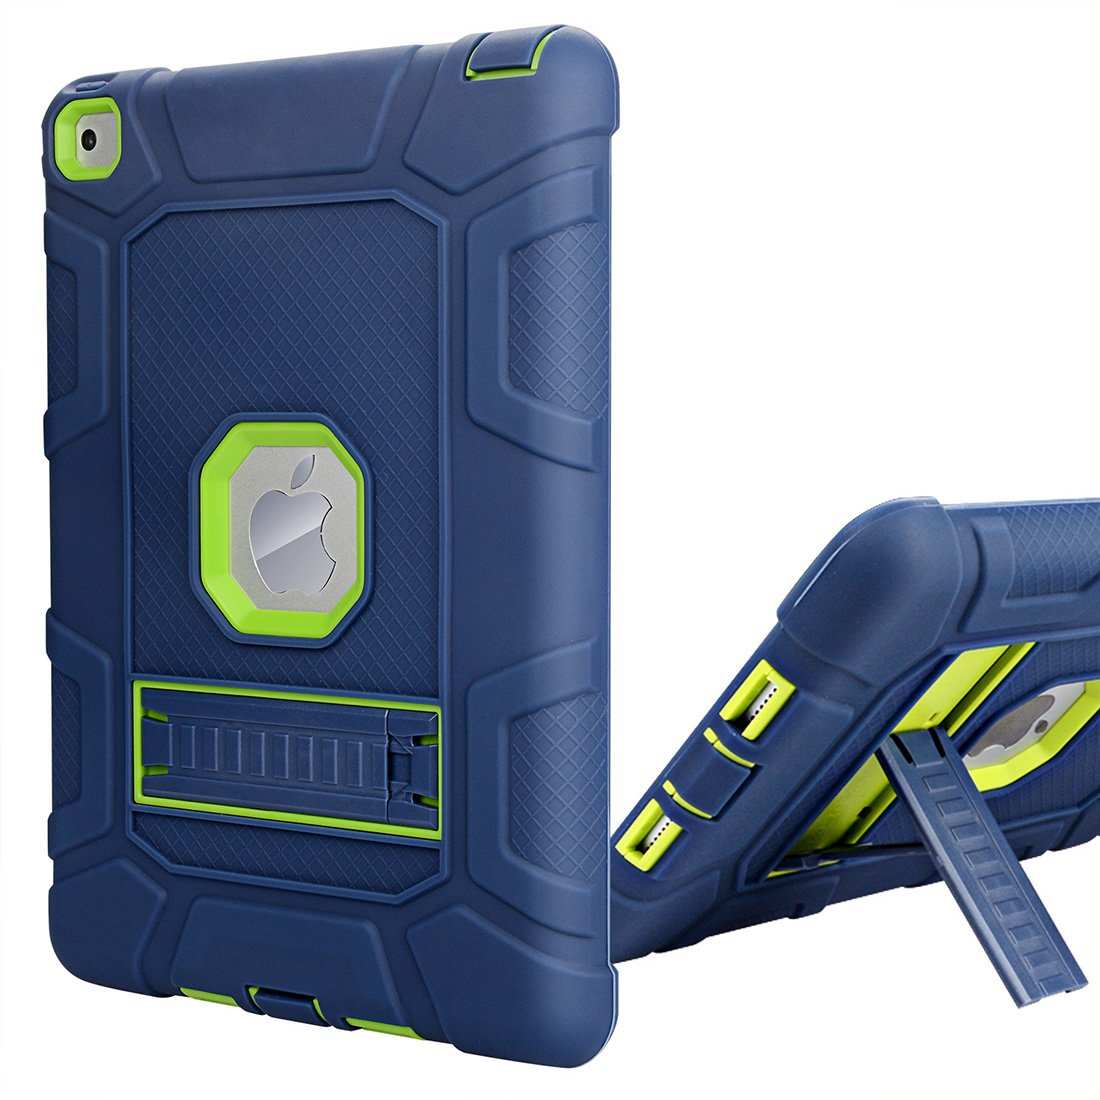 iPad Air 2 Case, WORLDMOM [Hybrid Shockproof Case] with KickStand Support Rugged Triple-Layer Heavy Duty Shock Resistant Drop Proof Case Cover for iPad Air 2 with Retina Display/iPad 6,Blue/Green by WORLDMOM (Image #1)